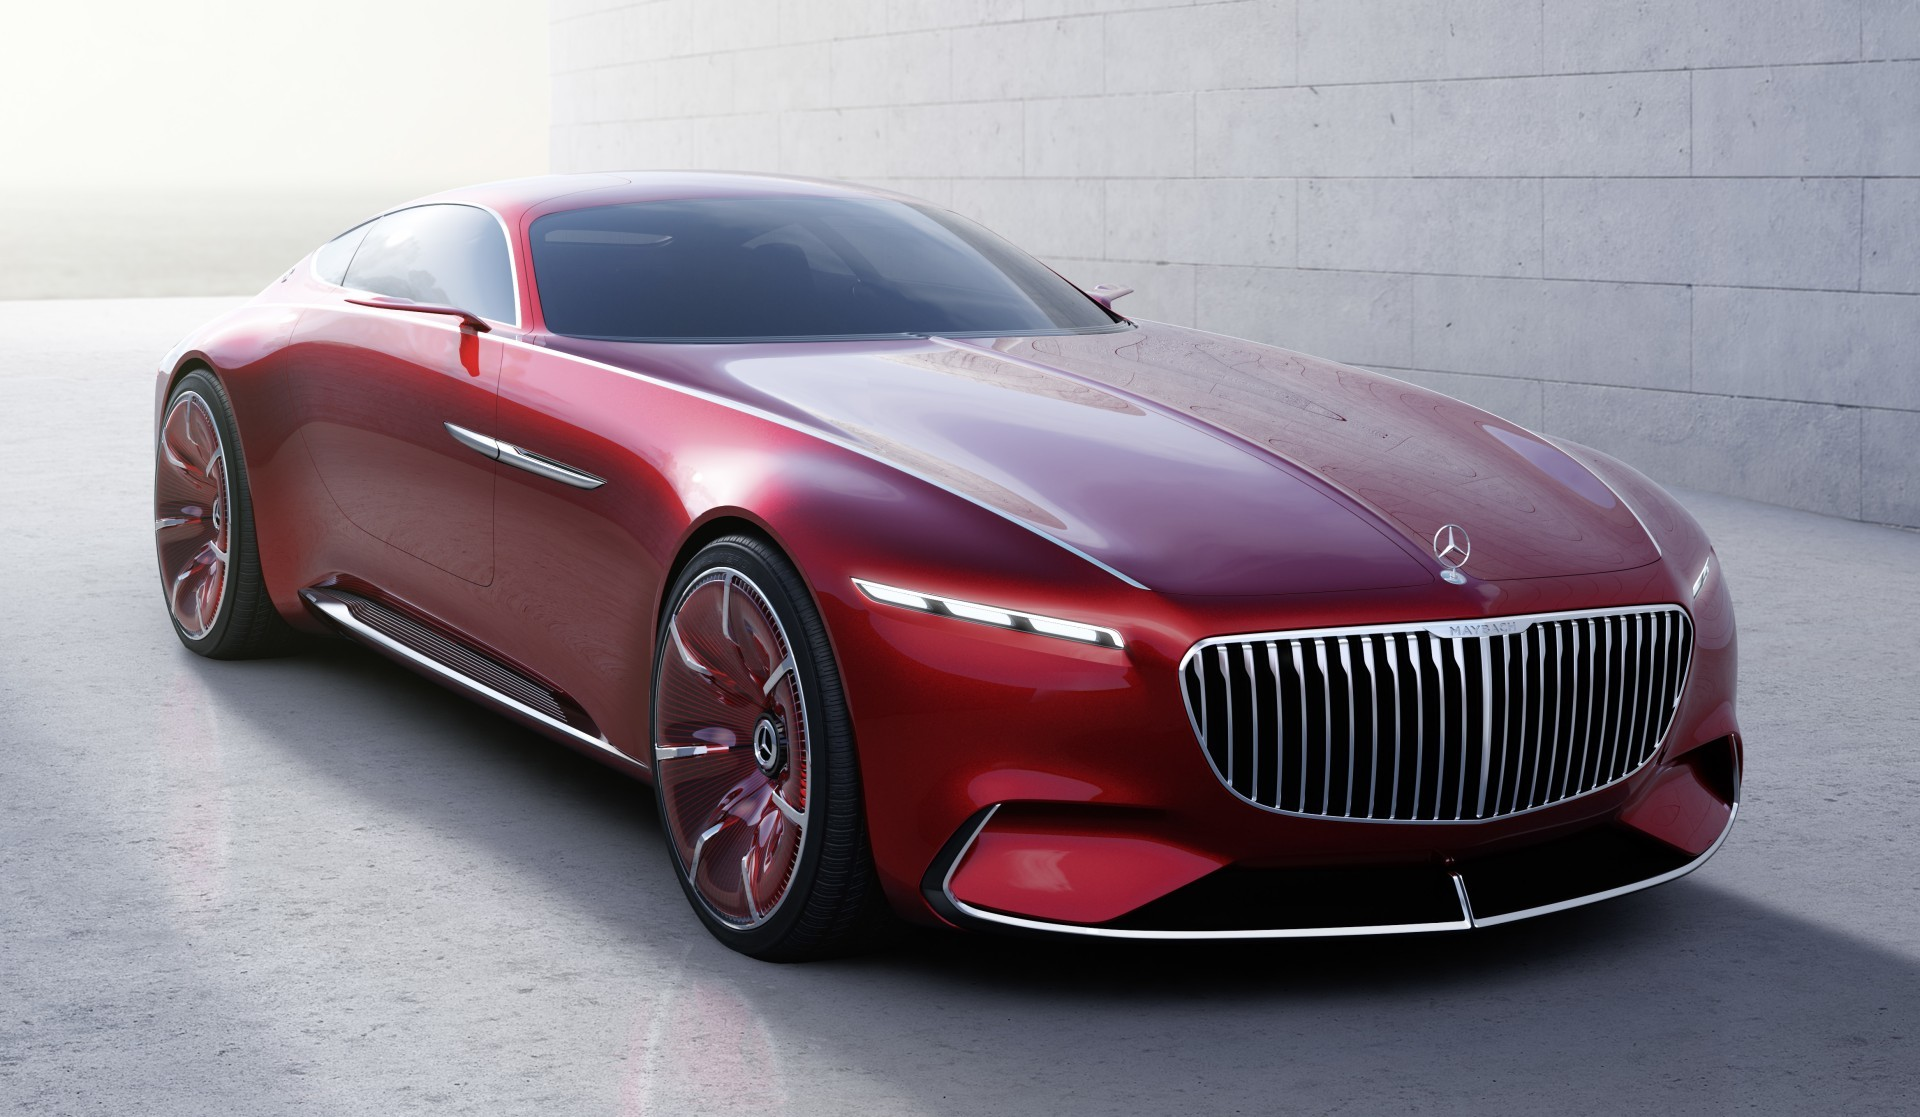 Проект шестиметрового электрокара Vision Mercedes-Maybach 6 - 1